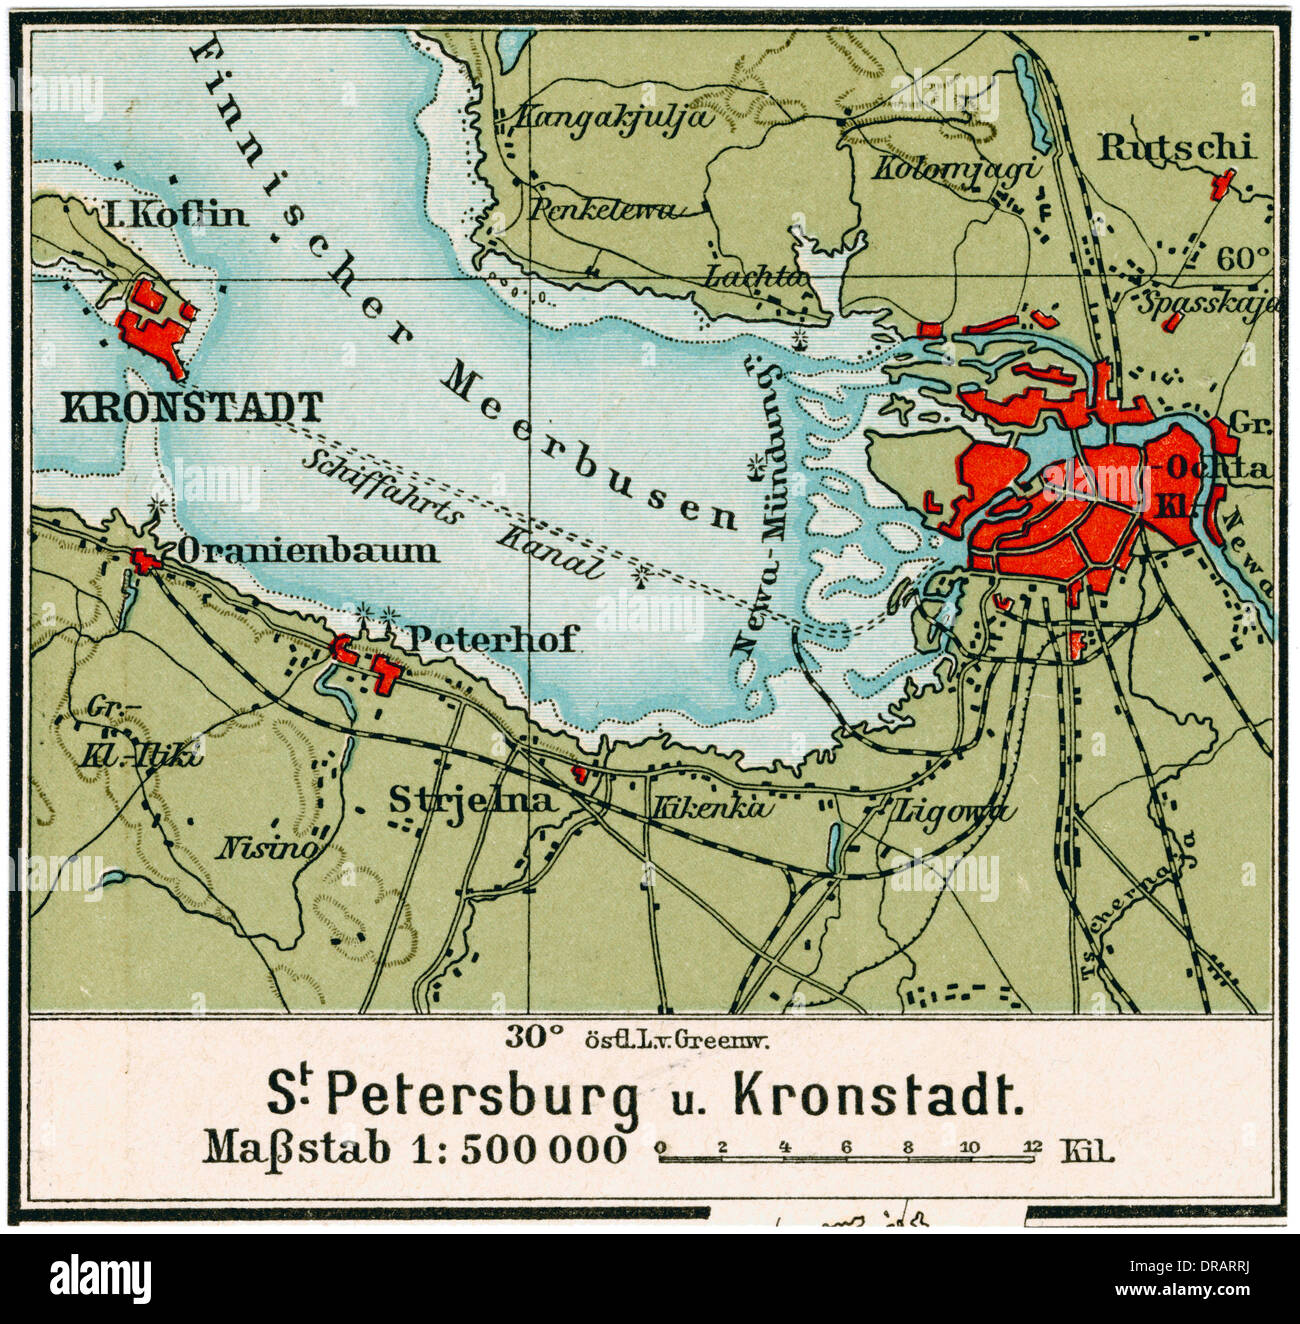 Map Of St Petersburg And Surrounding Area Russia Stock Photo